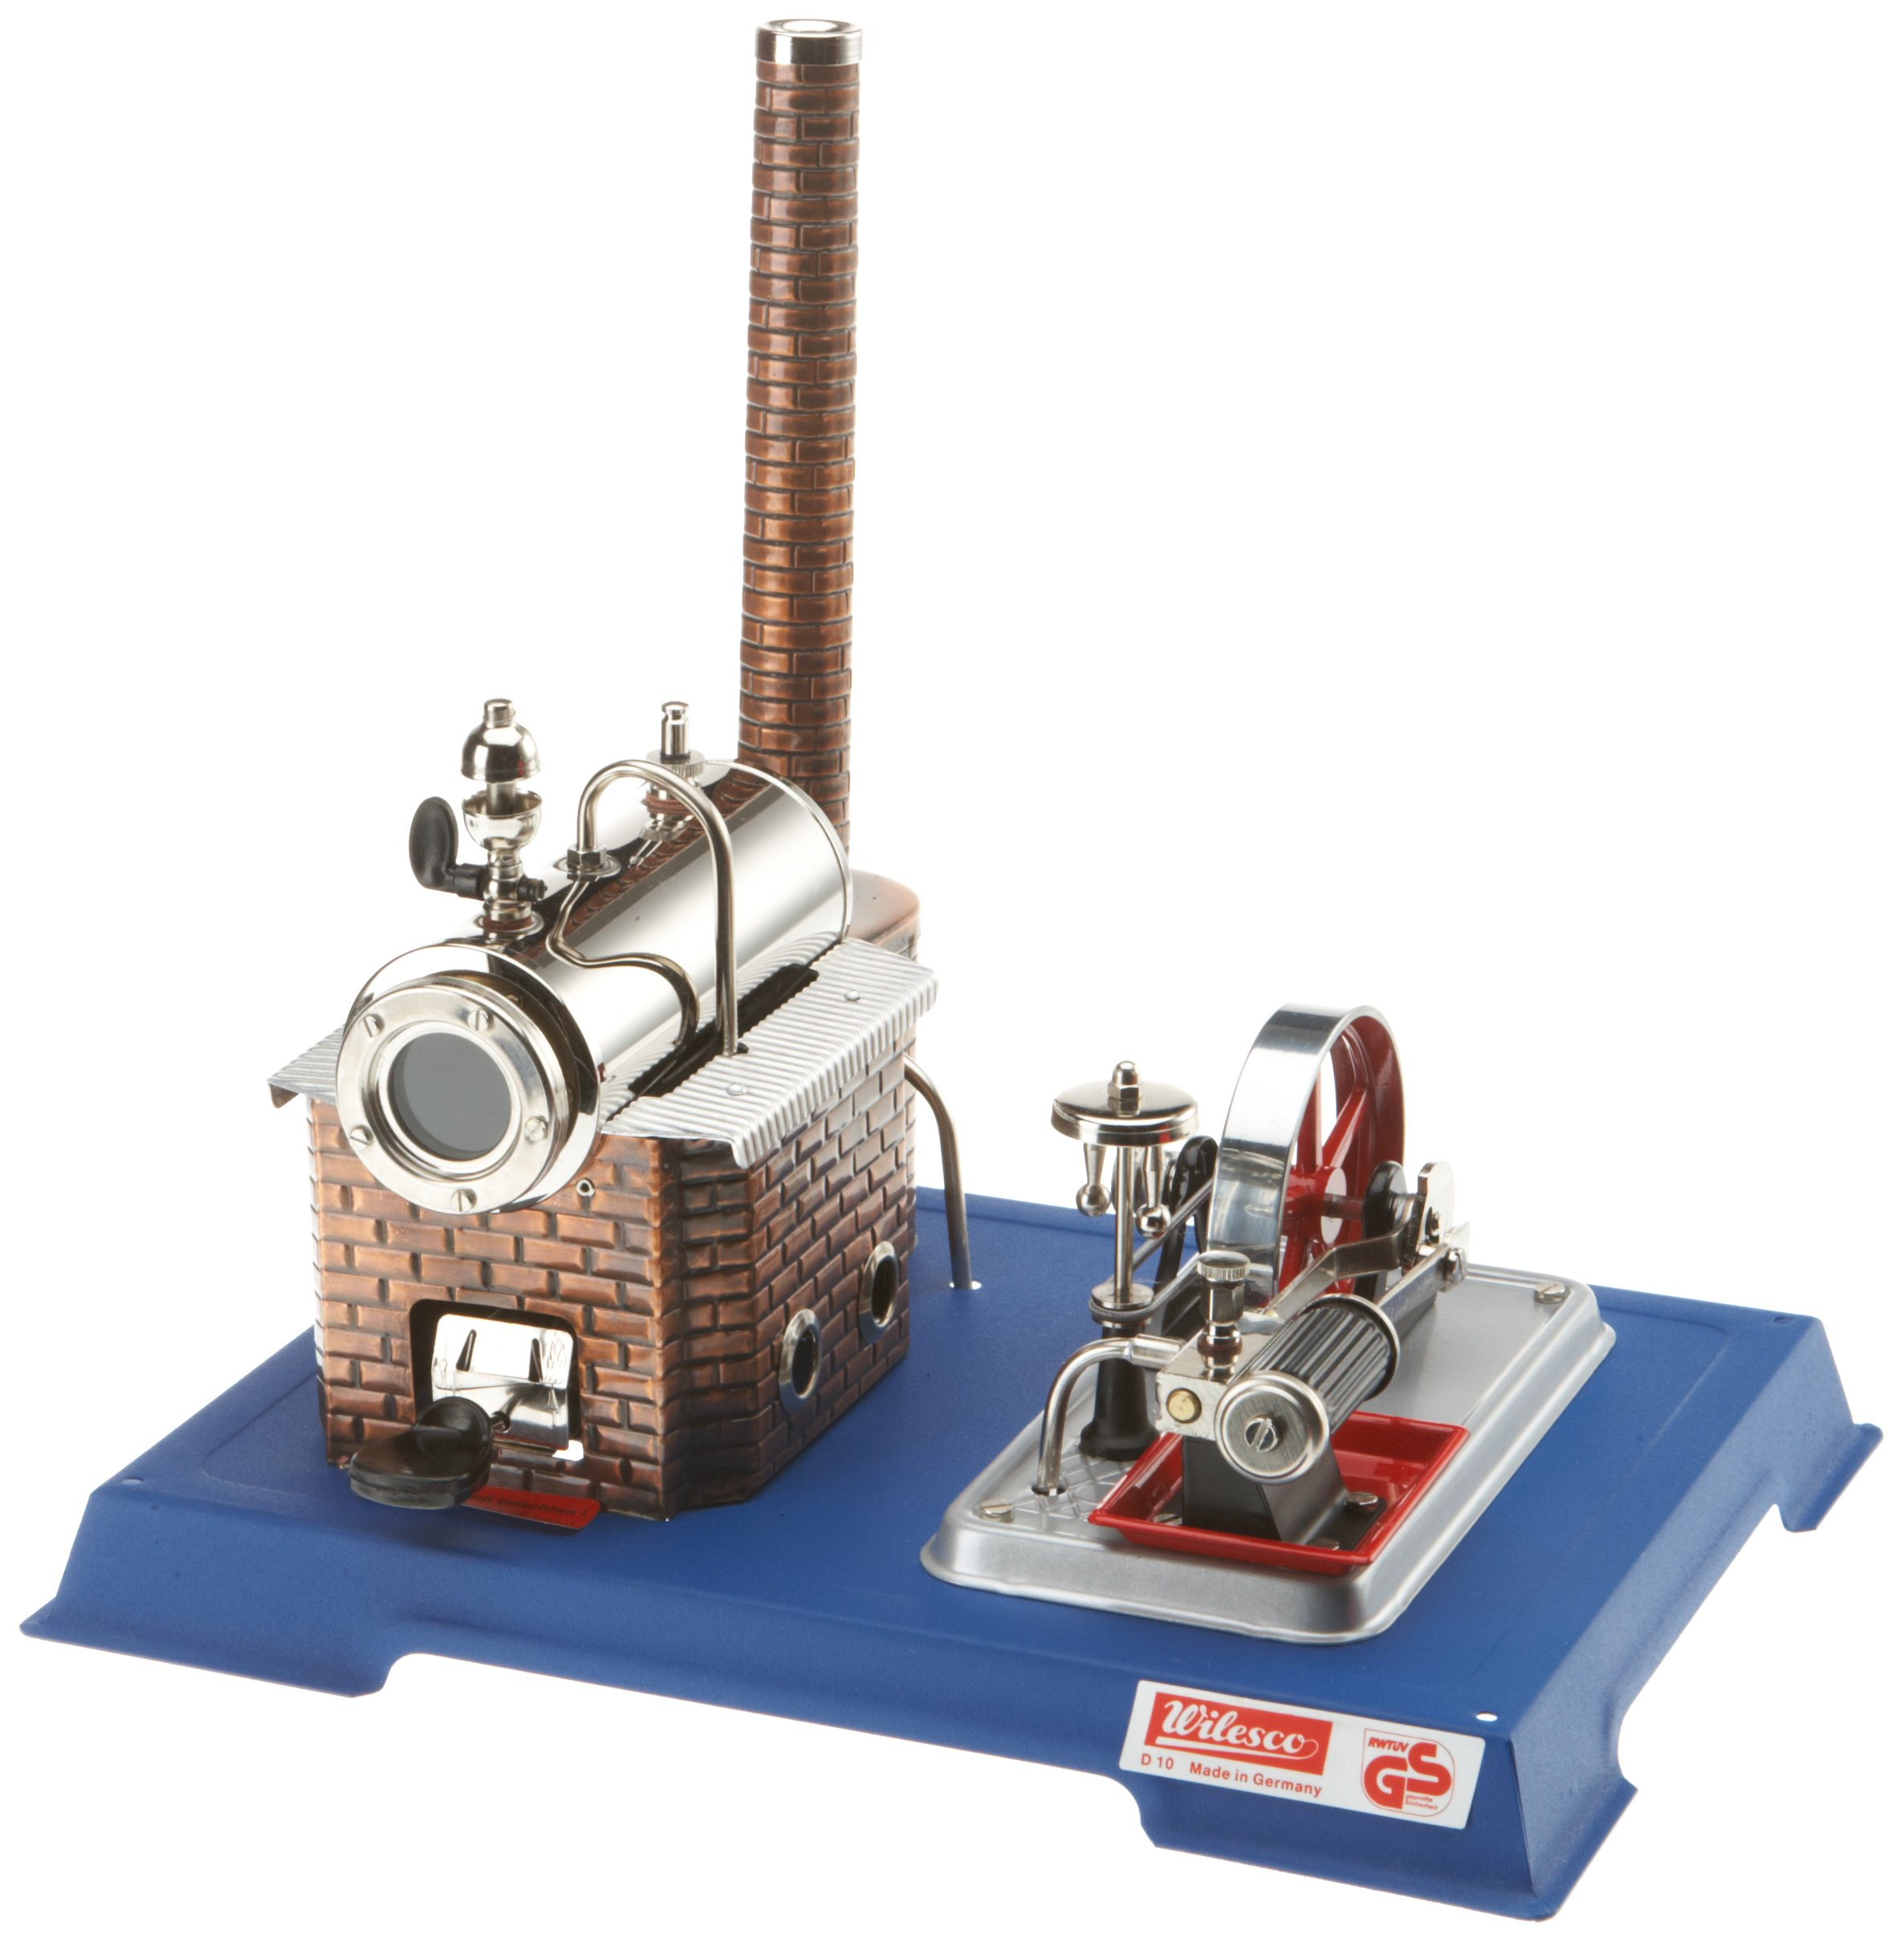 Wilesco 10steam Engine D10, 155 ml Boiler Contents, Including Safety Valve and Whistle-Pipe